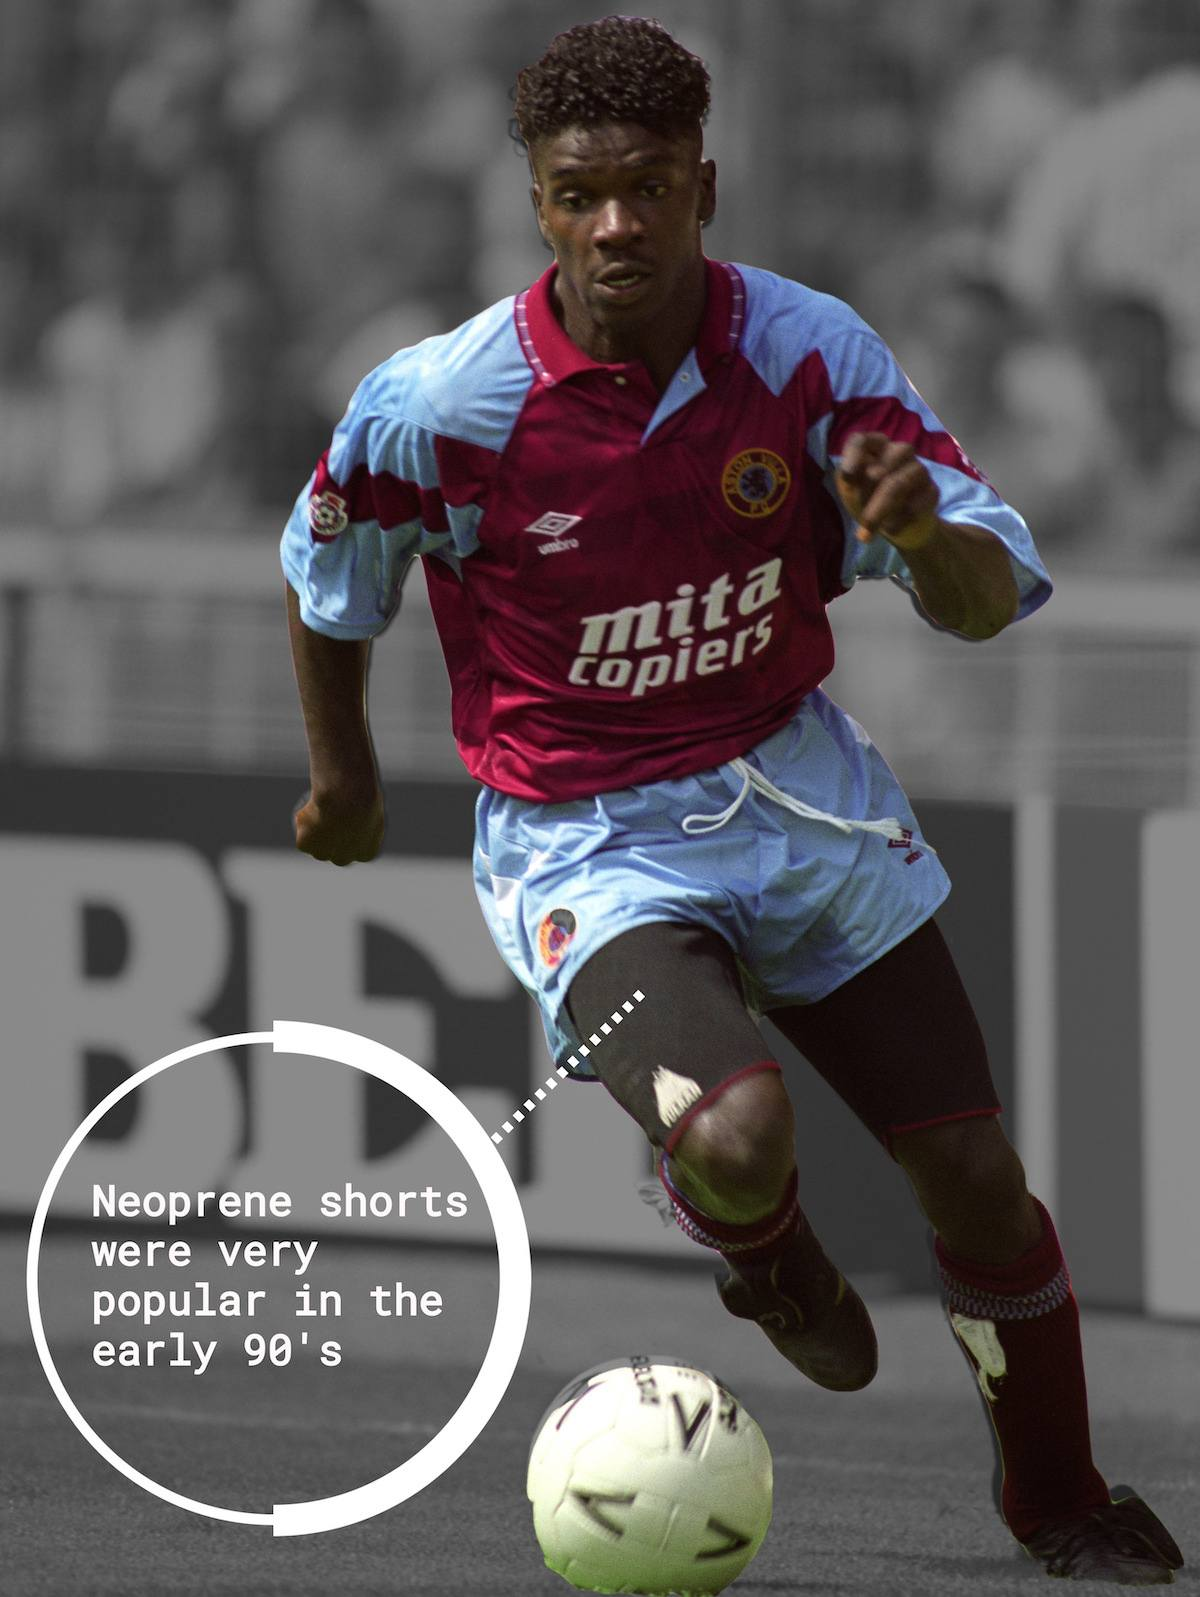 Premier_league_player_dribbles_the_ball_in_a_top_flight_game_football4football